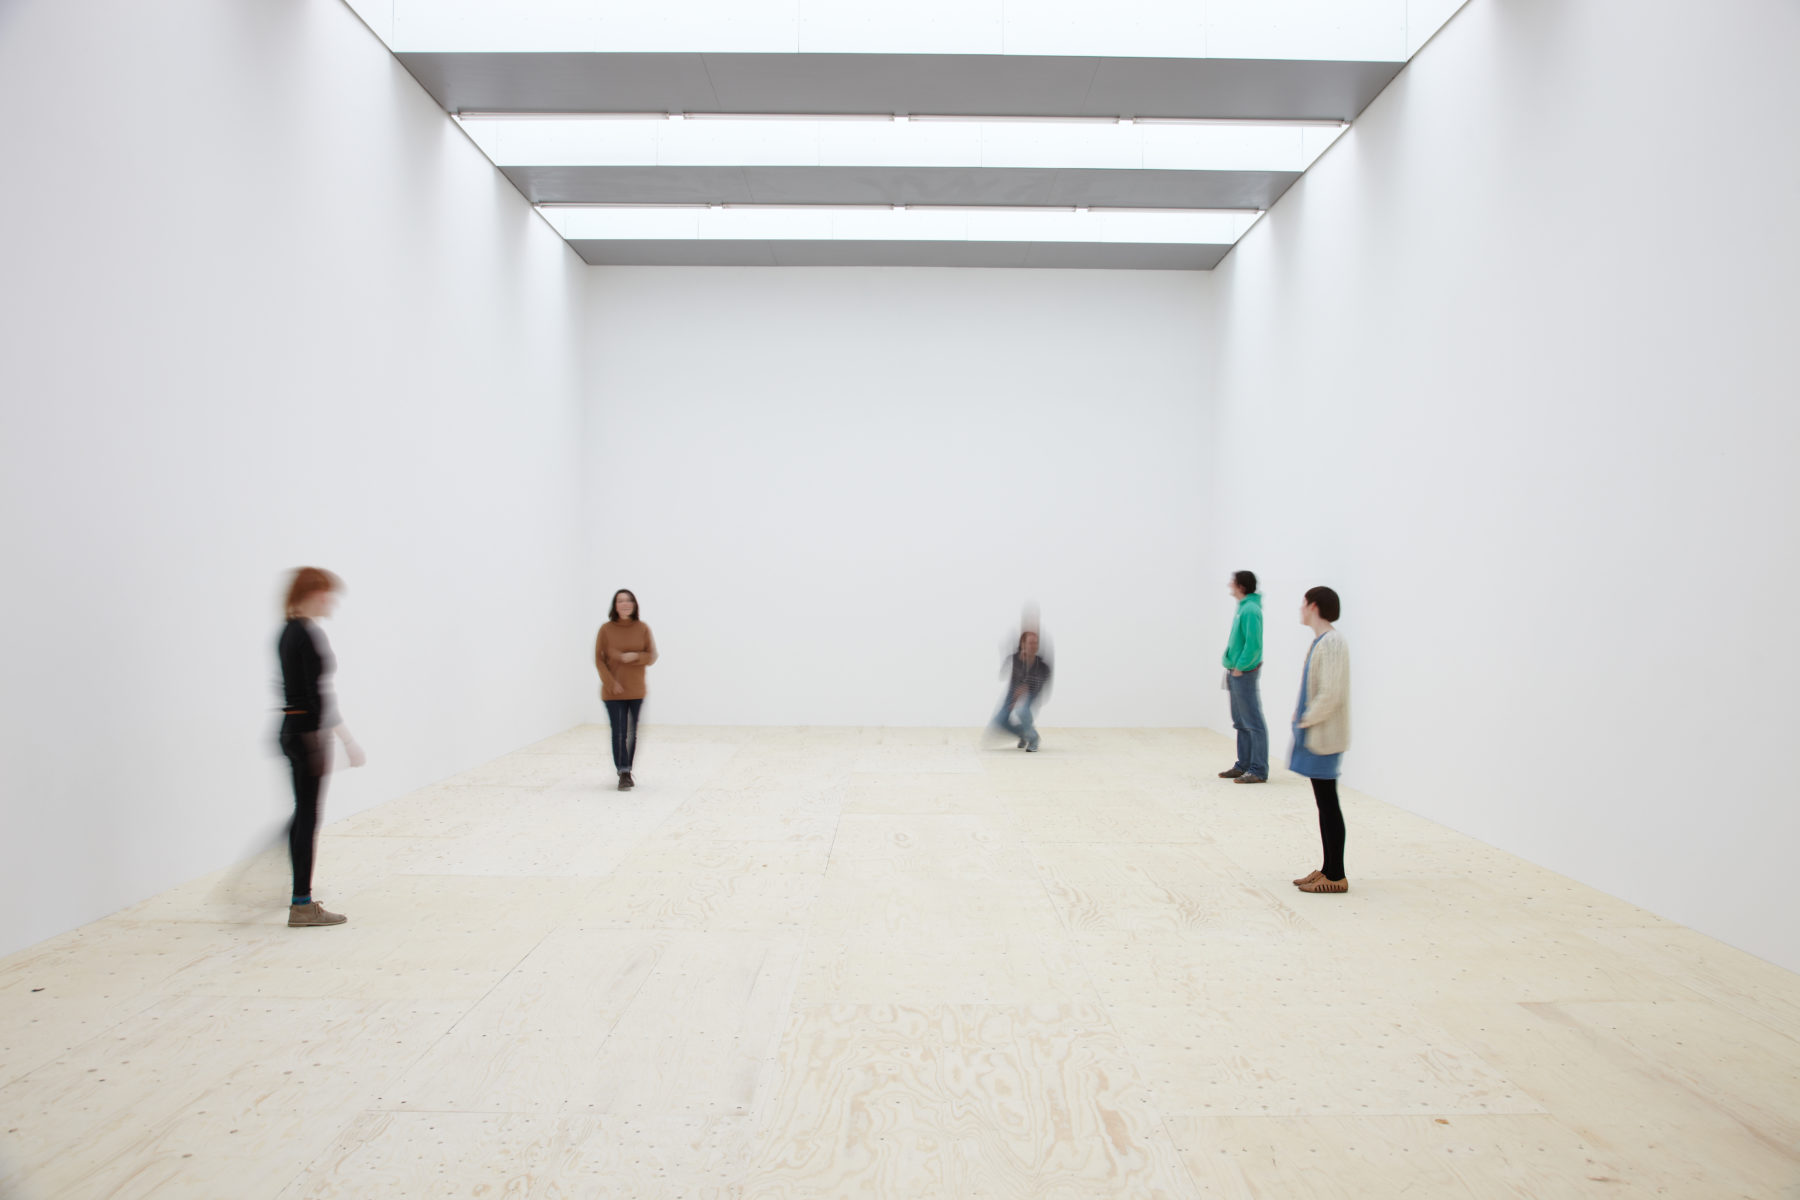 Installation: Visitors stand in the gallery that looks almost empty.